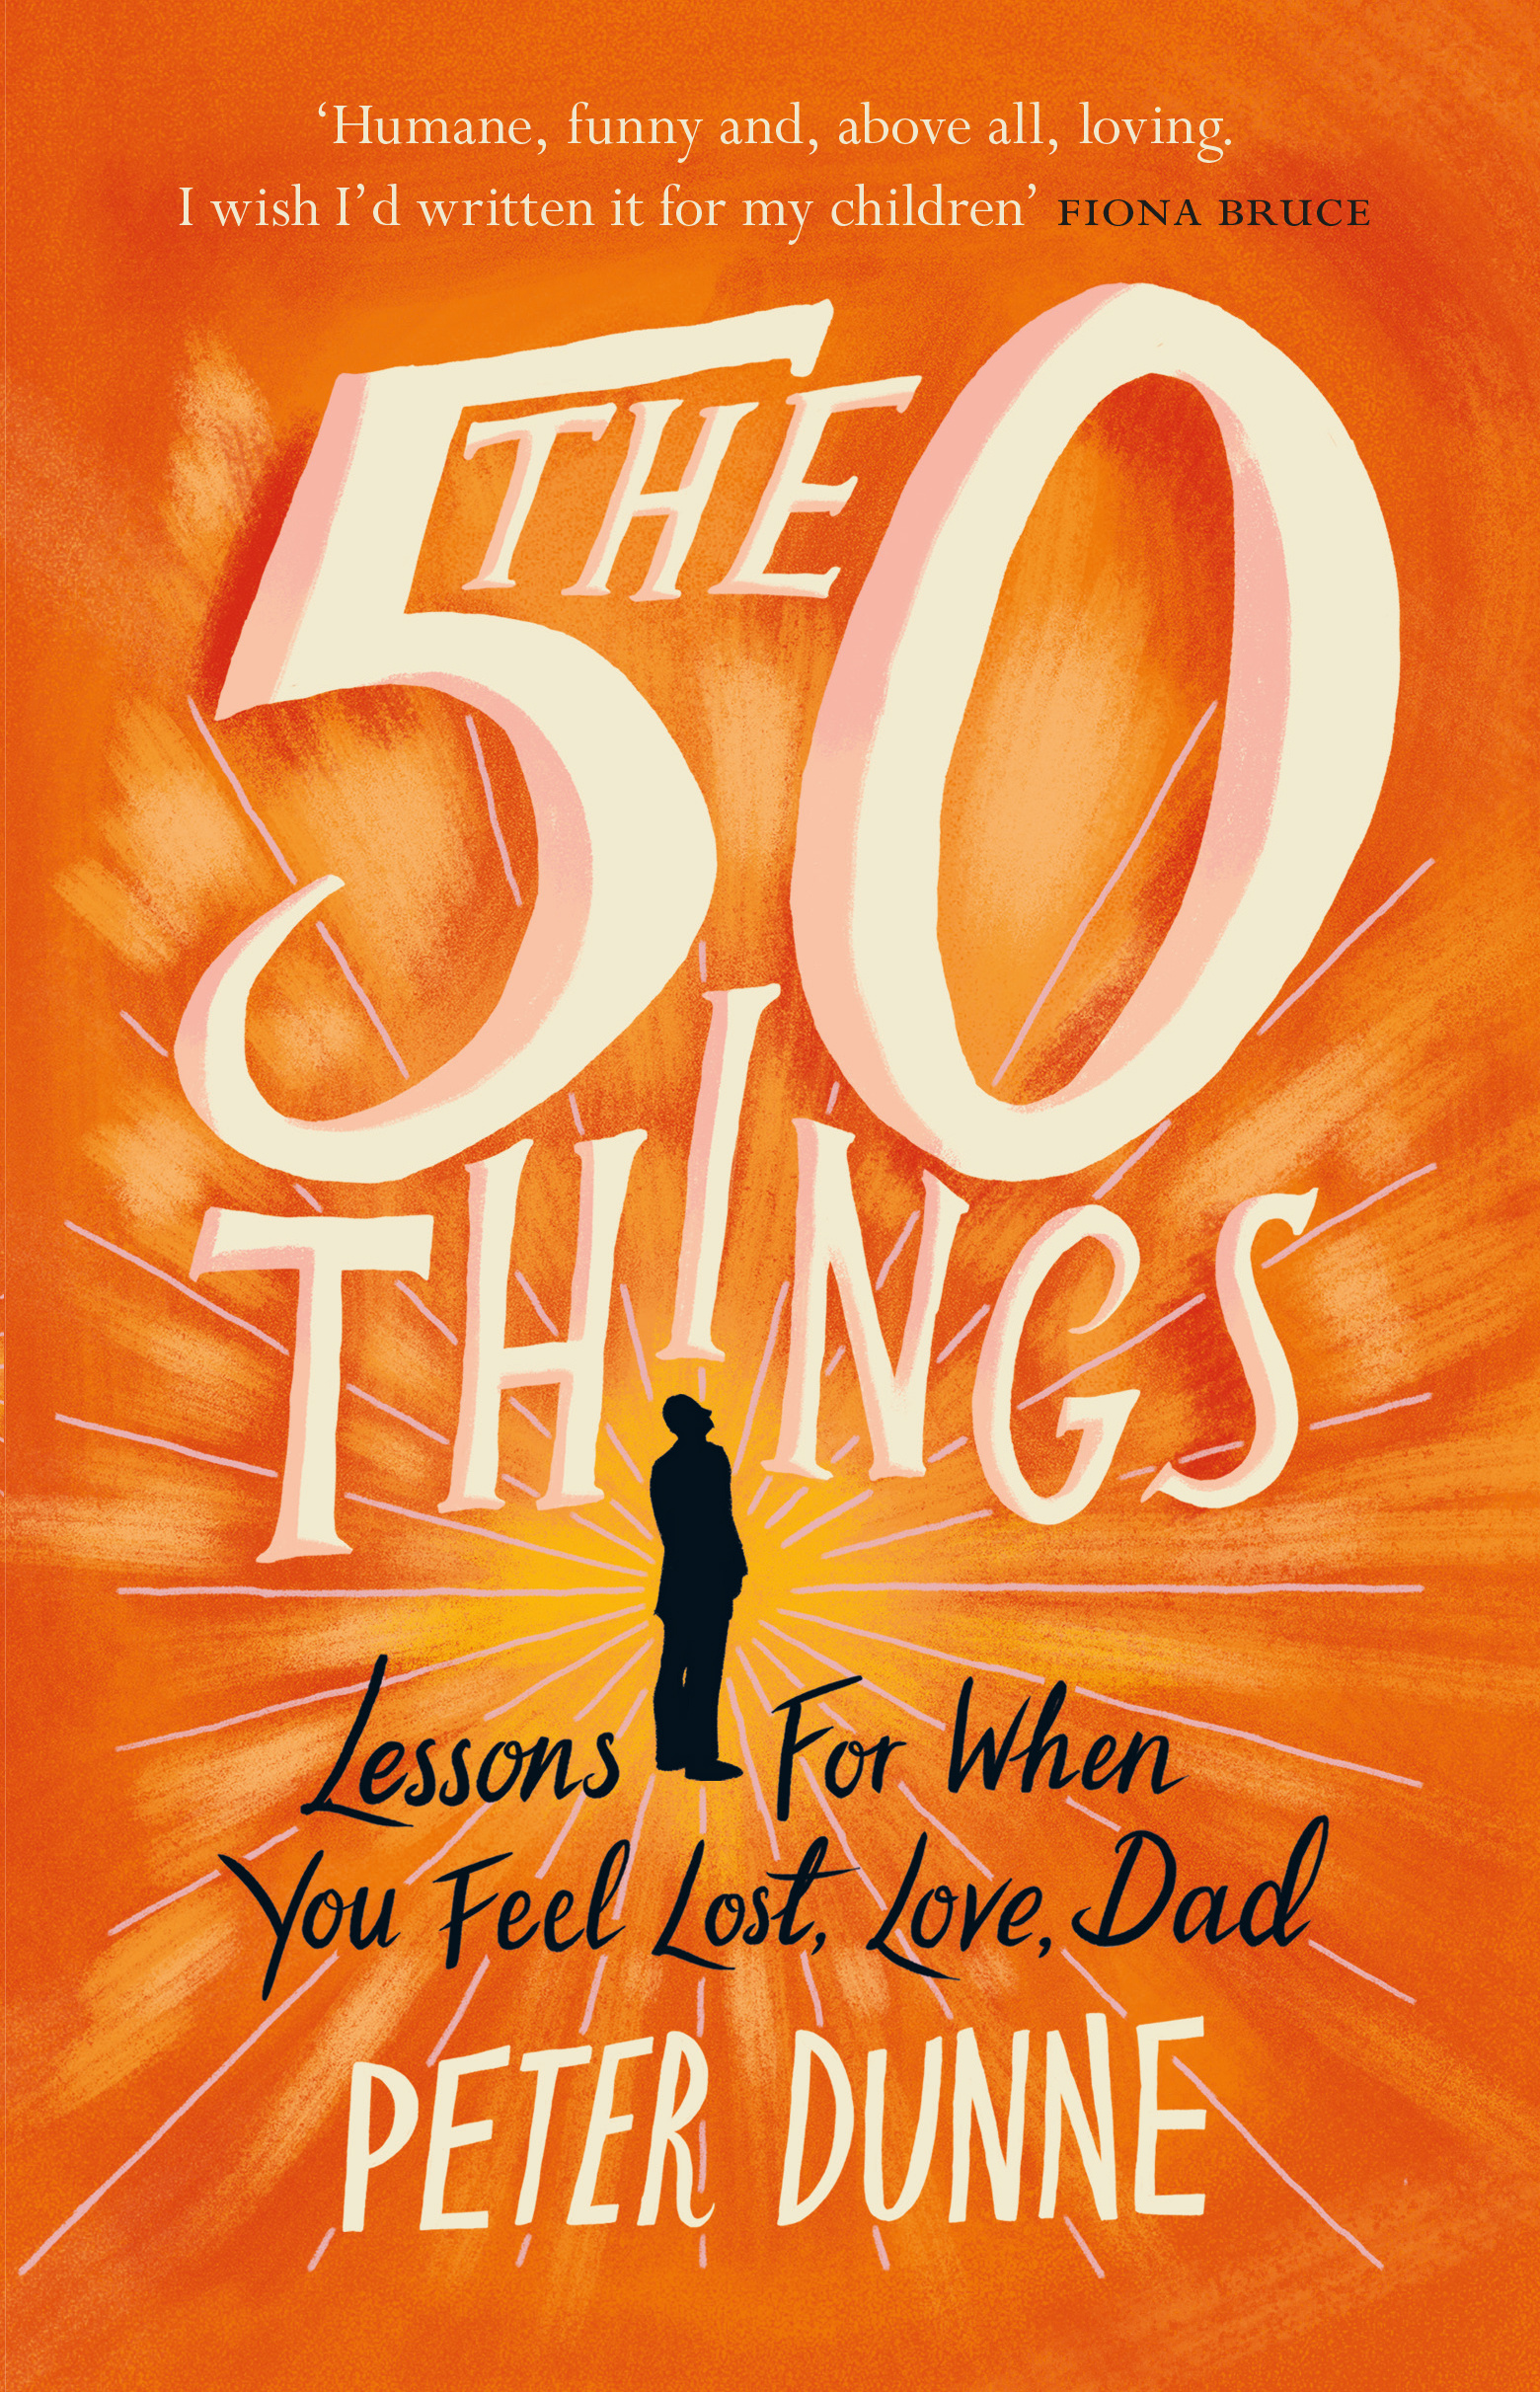 The 60 Things Lessons For When You Feel Lost Love Dad By Peter Impressive Download Images Of A Lost Love